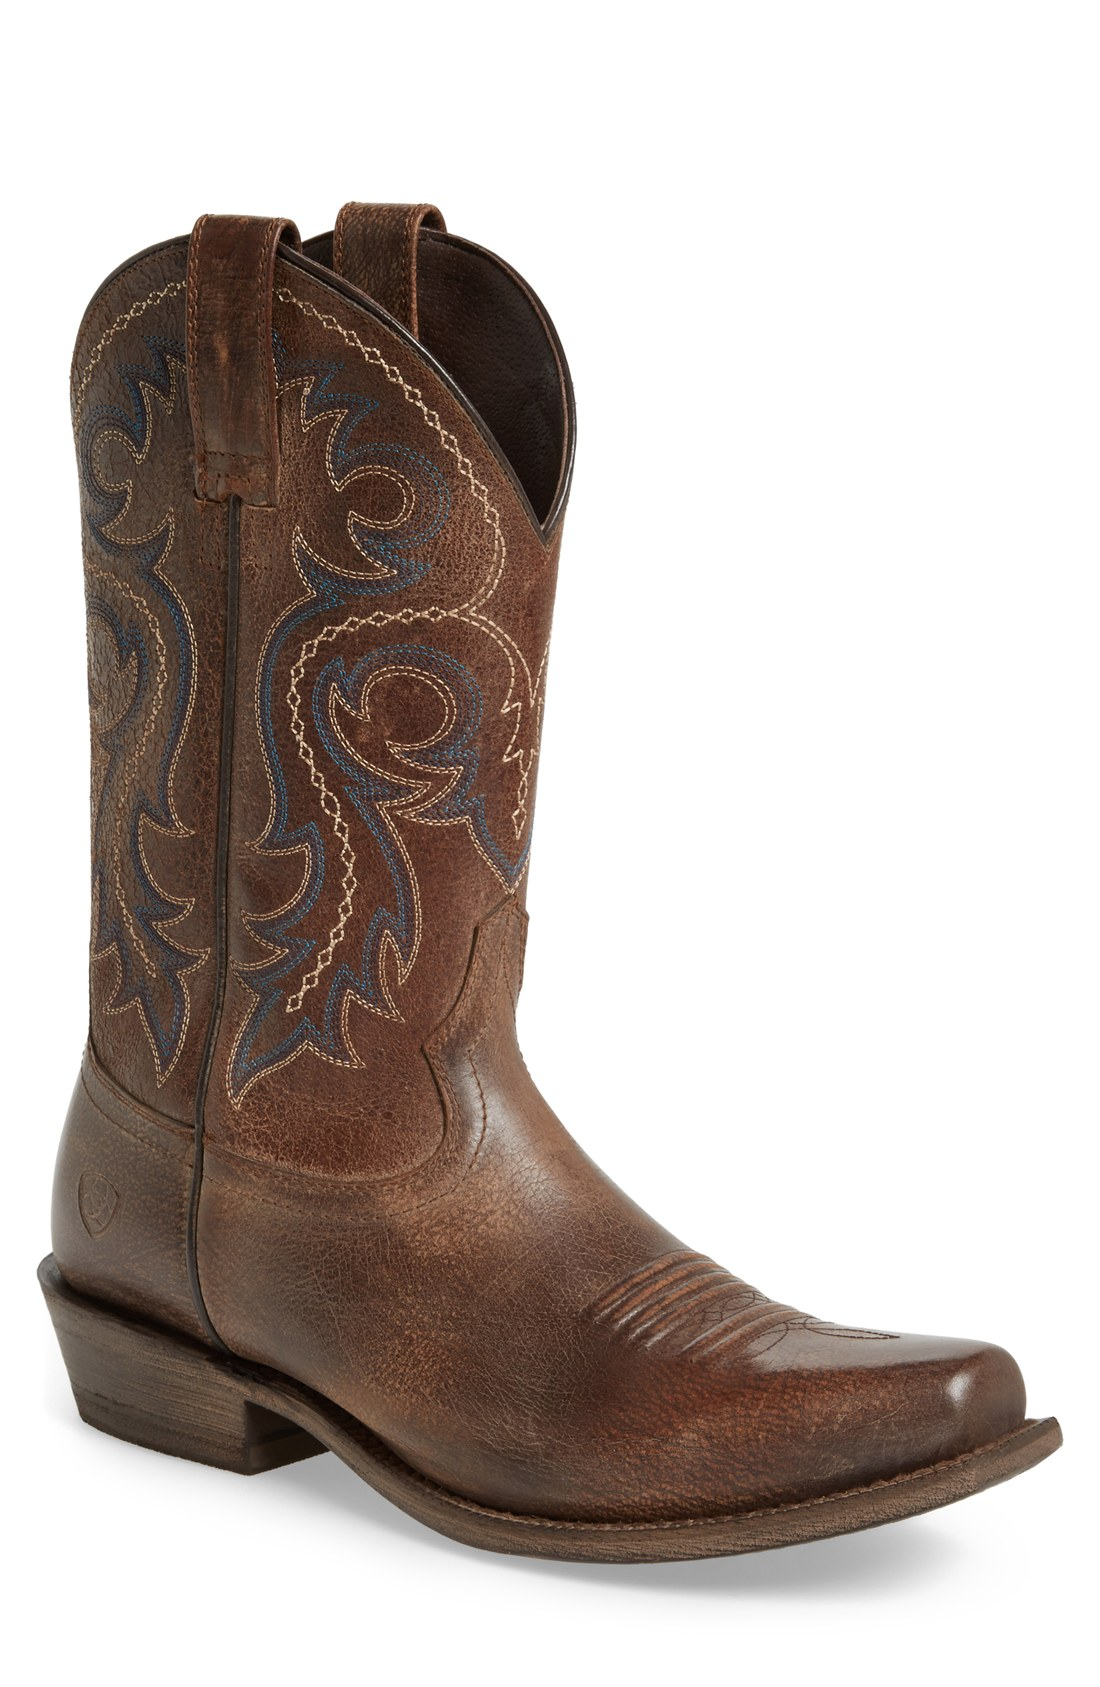 Ariat Boot Dealers mWNGyprQ